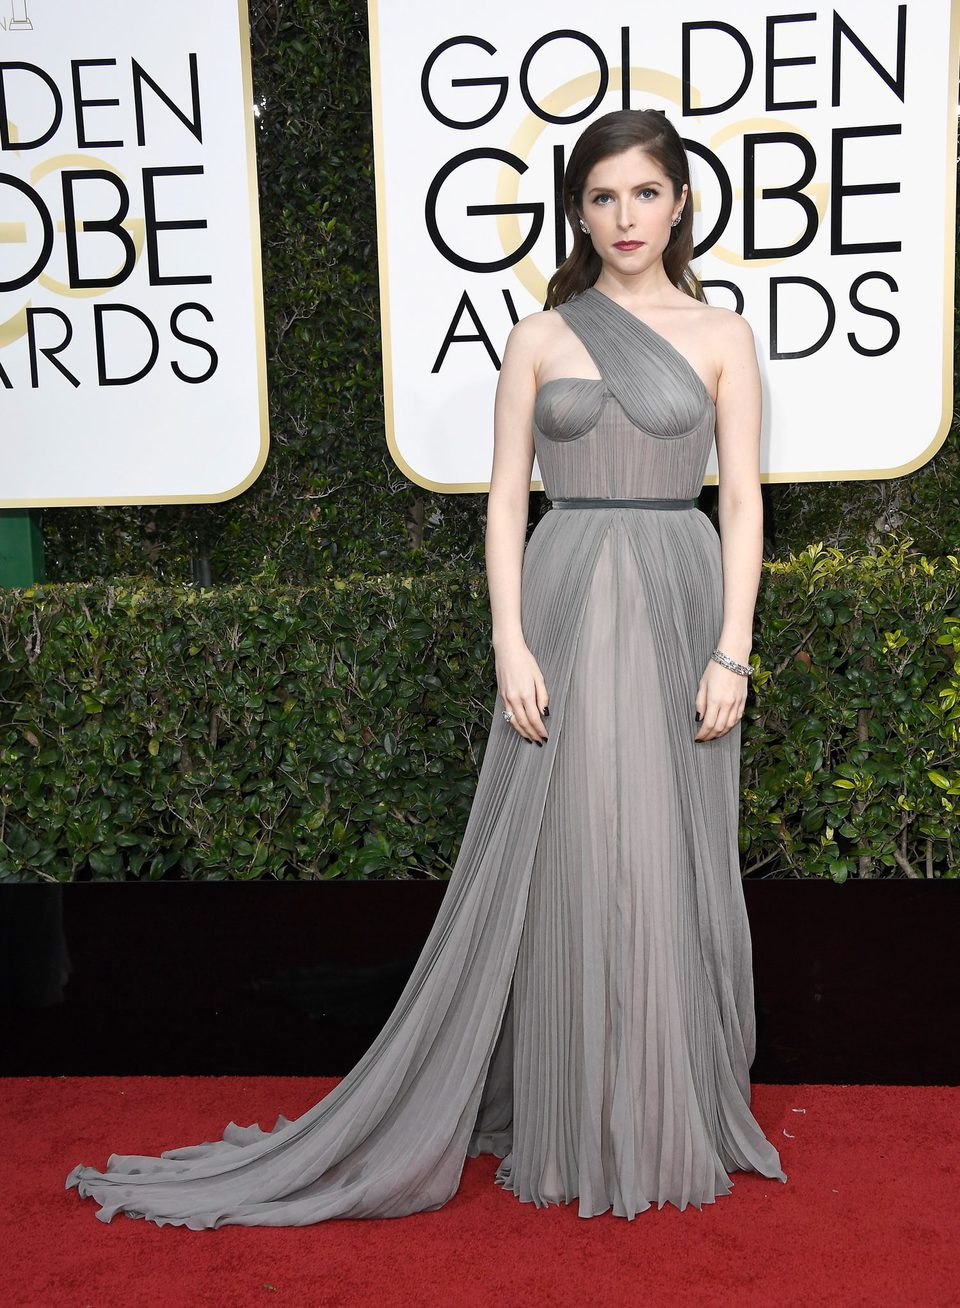 Anna Kendrick at Golden Globes 2017 red carpet